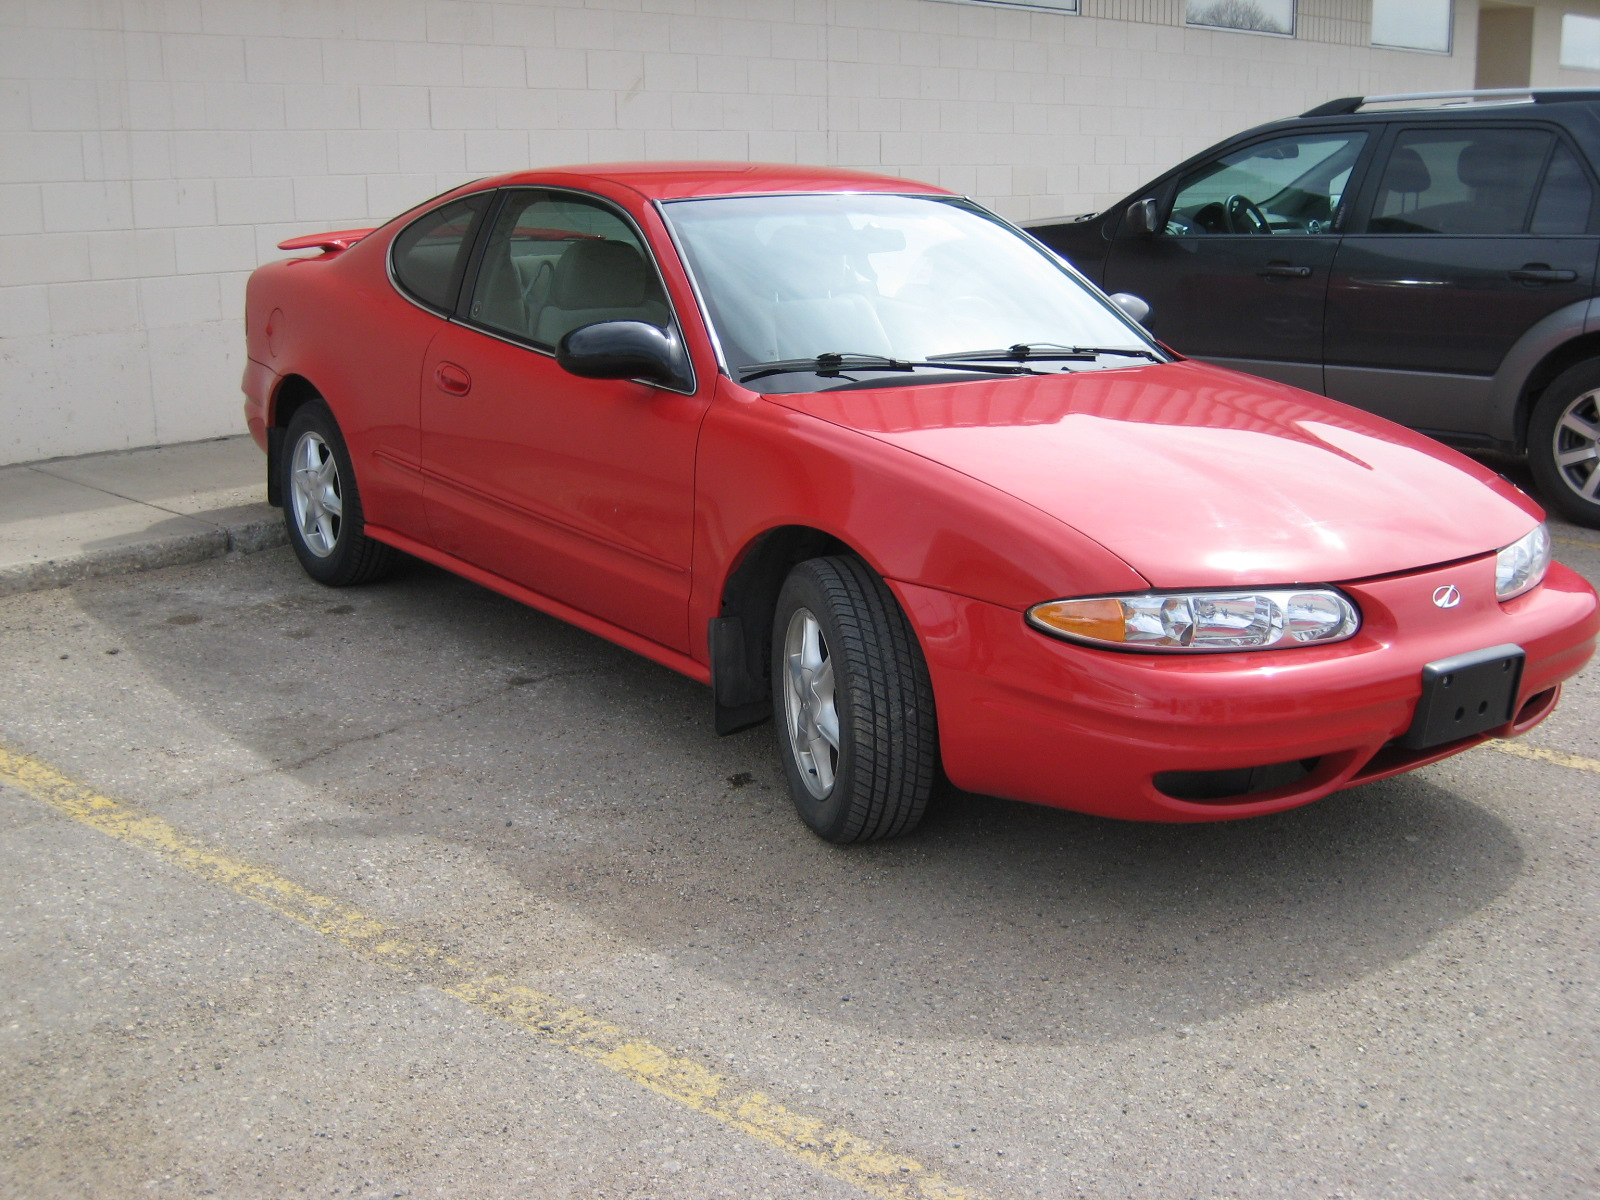 2001 Oldsmobile Alero GL Coupe picture